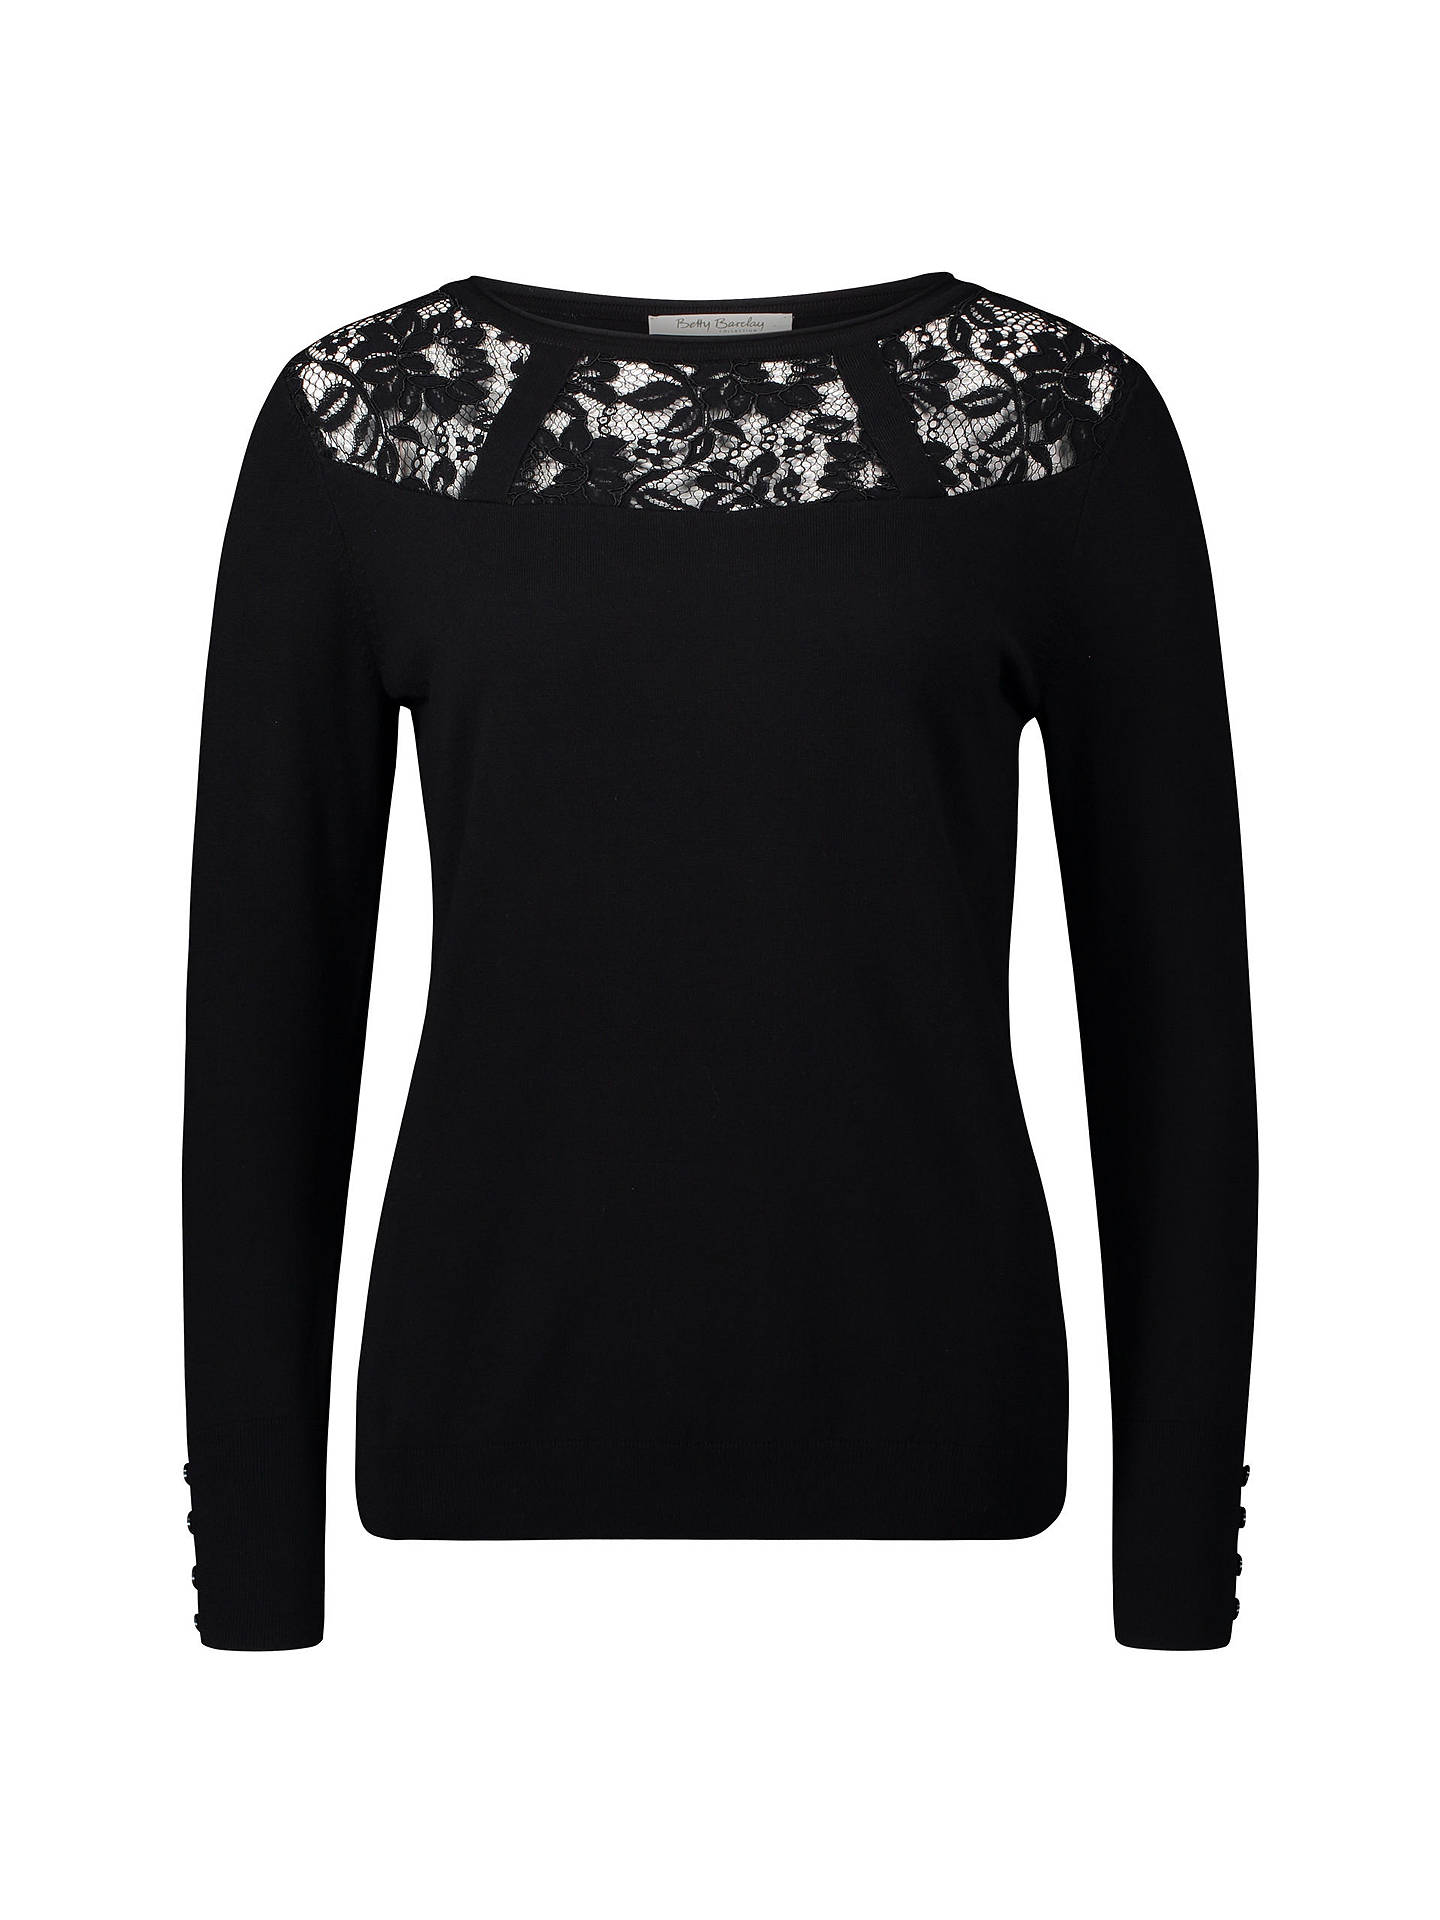 BuyBetty Barclay Lace Trimmed Top, Black, 10 Online at johnlewis.com